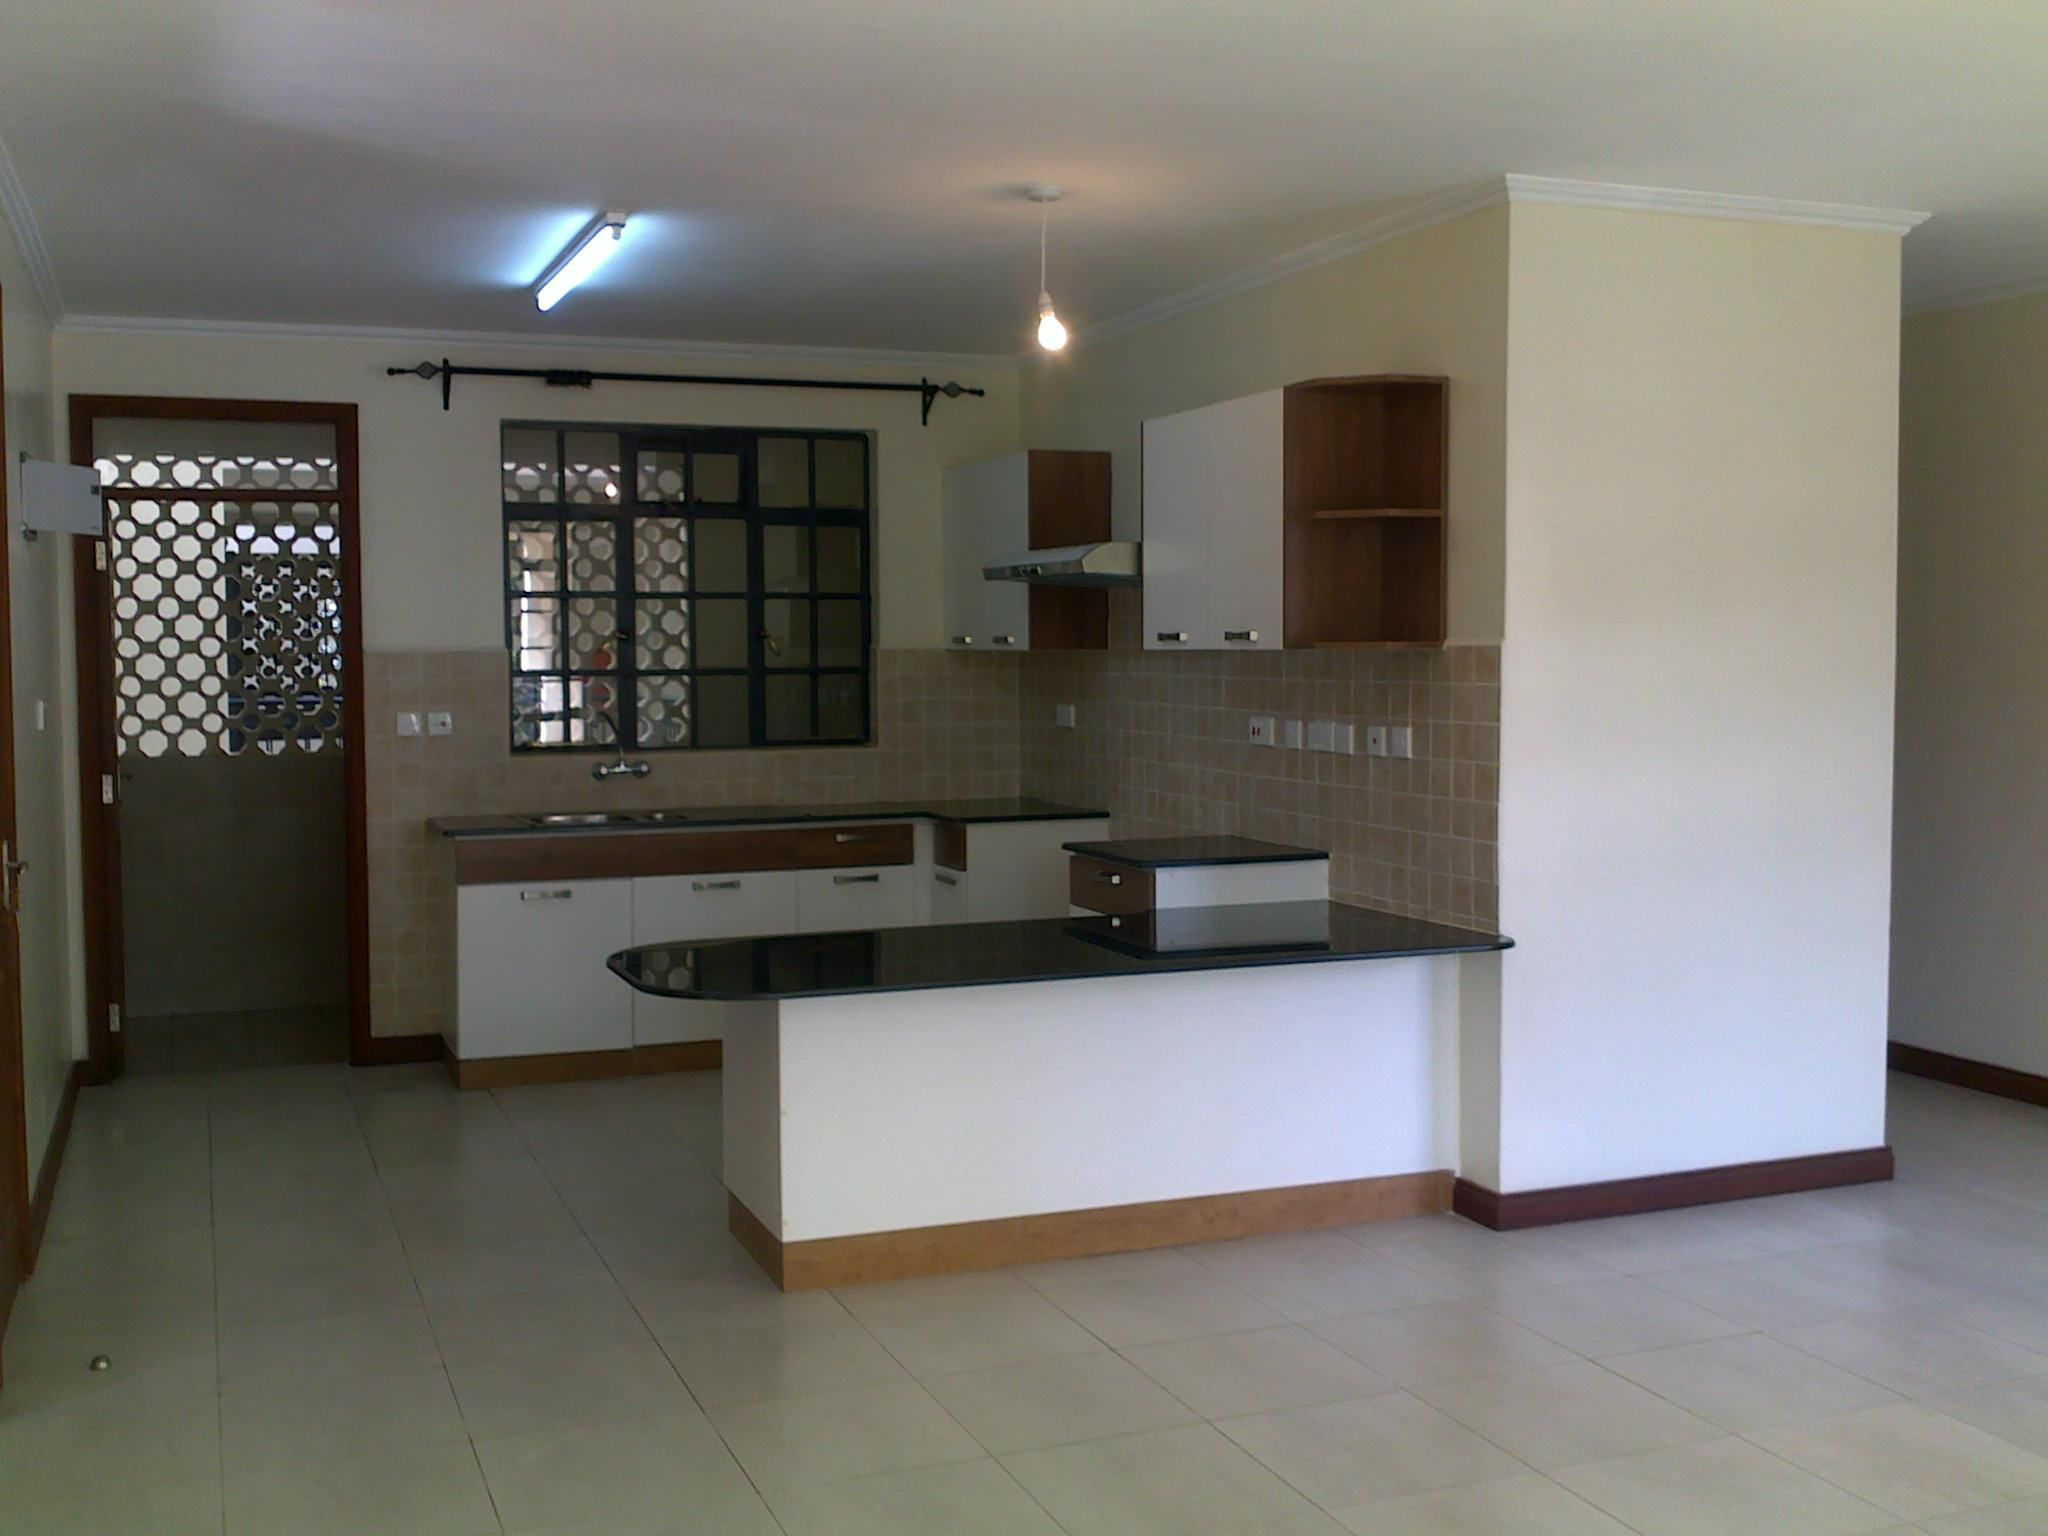 Average cost of building a 3 bedroom house in Kenya in ...